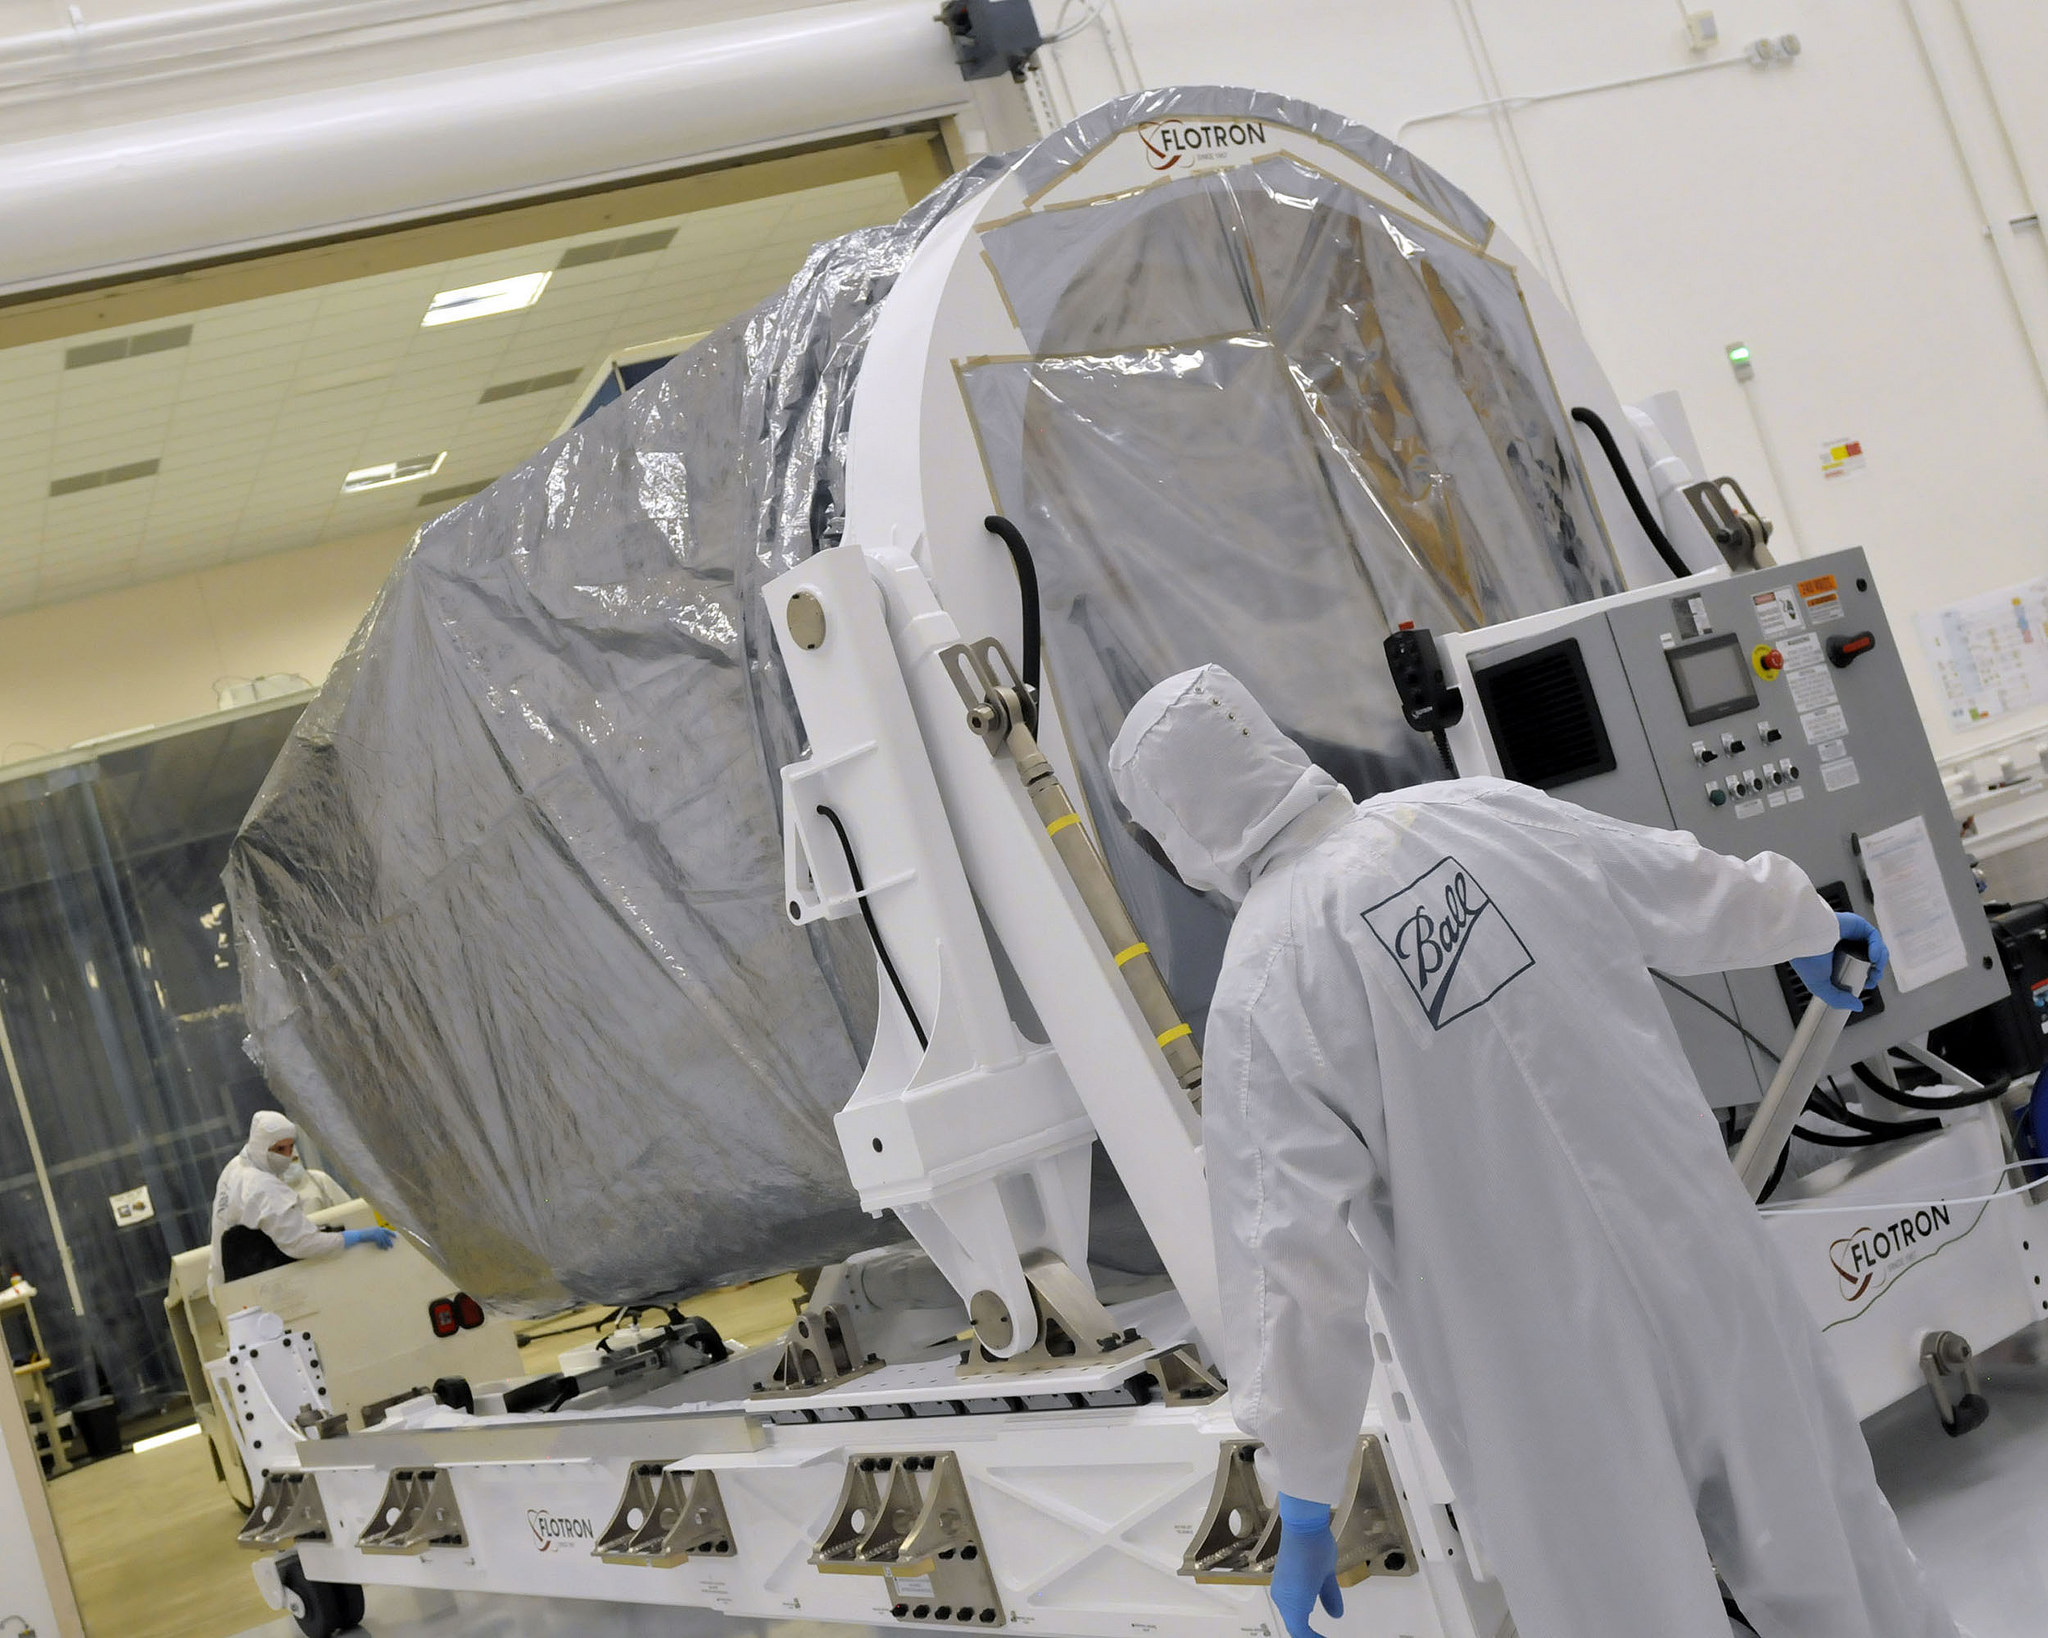 Ball Aerospace engineers and technicians transport the JPSS-1 satellite to its shipping container. Even though the satellite weighs 5,000 pounds (or 2.5 tons), transporting the spacecraft is a delicate operation. One wrong move could damage JPSS-1's sensitive instruments. (NASA Photo)